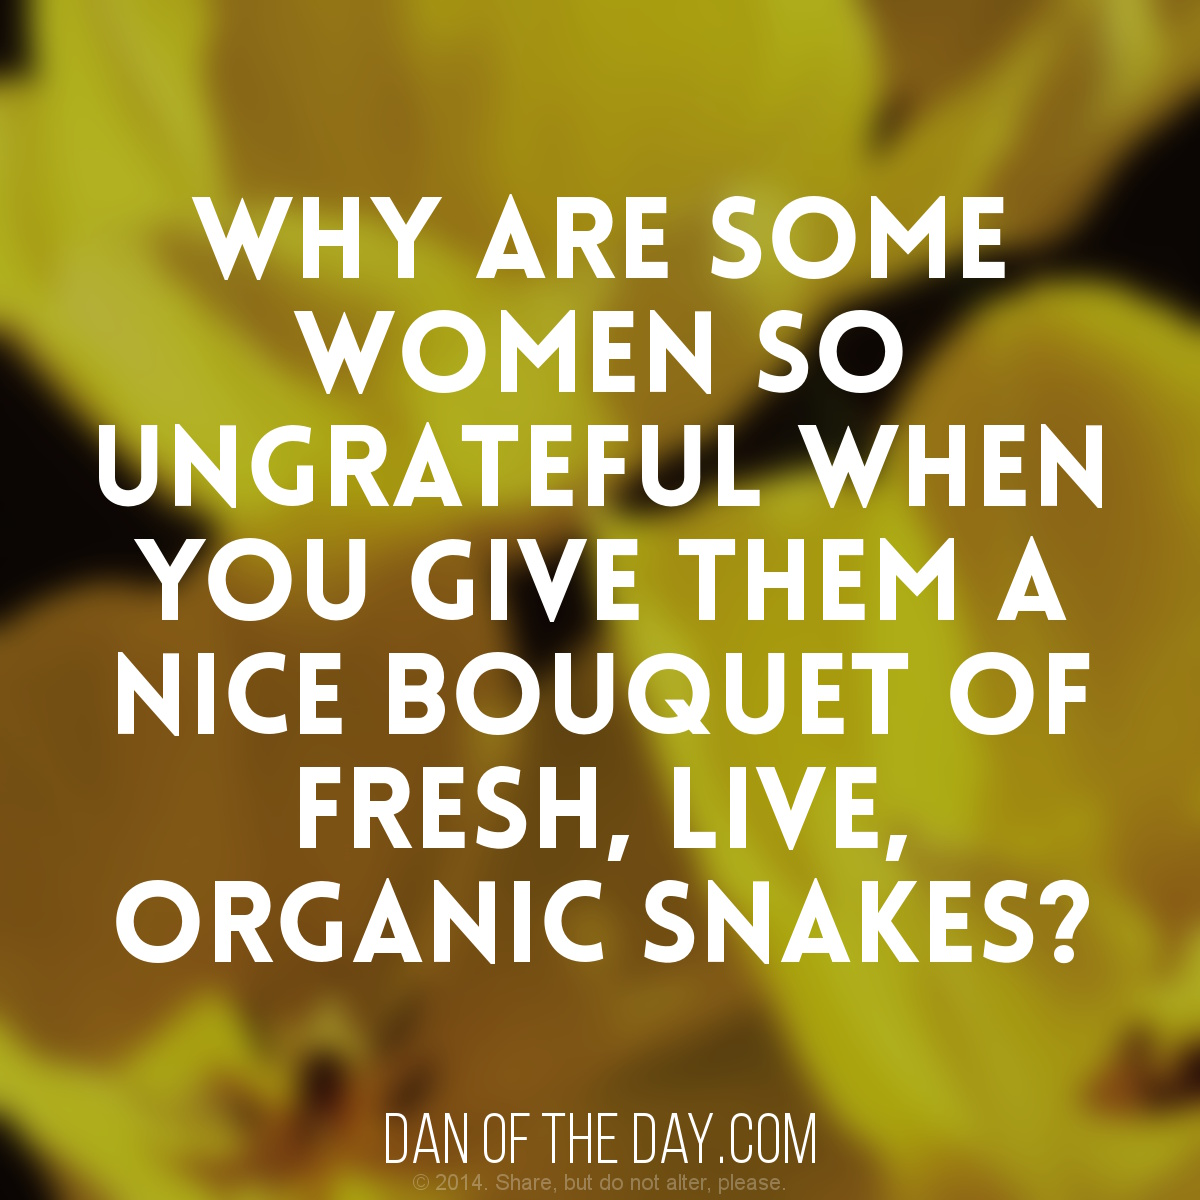 Bible Quotes Ungratefulness: Ungrateful Women Quotes. QuotesGram